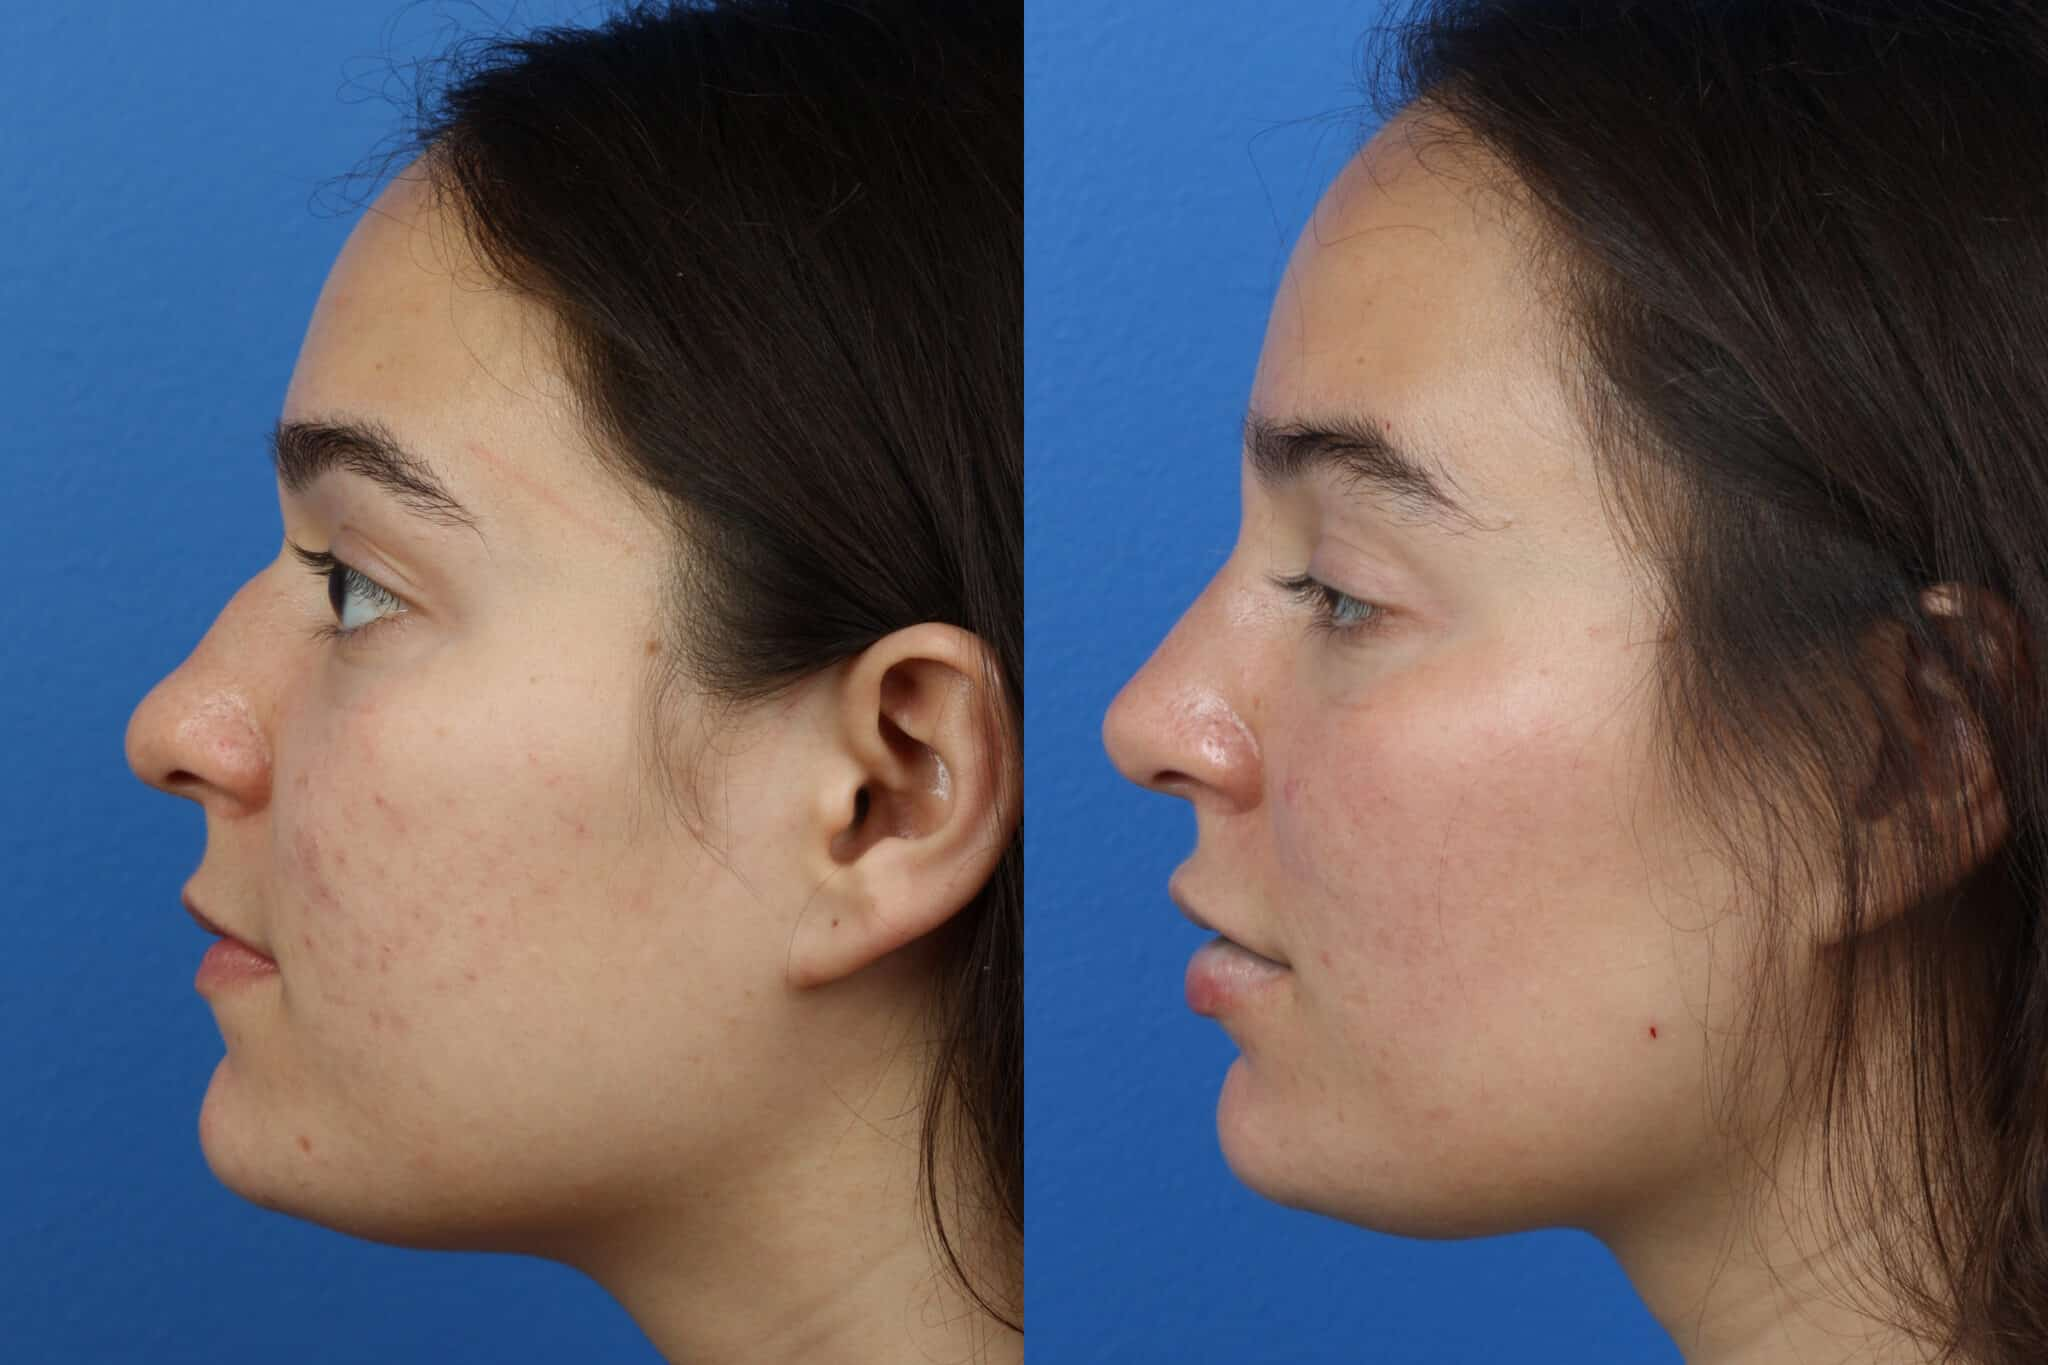 Rhinoplasty to Remove Dorsal Hump by Dr. Miller